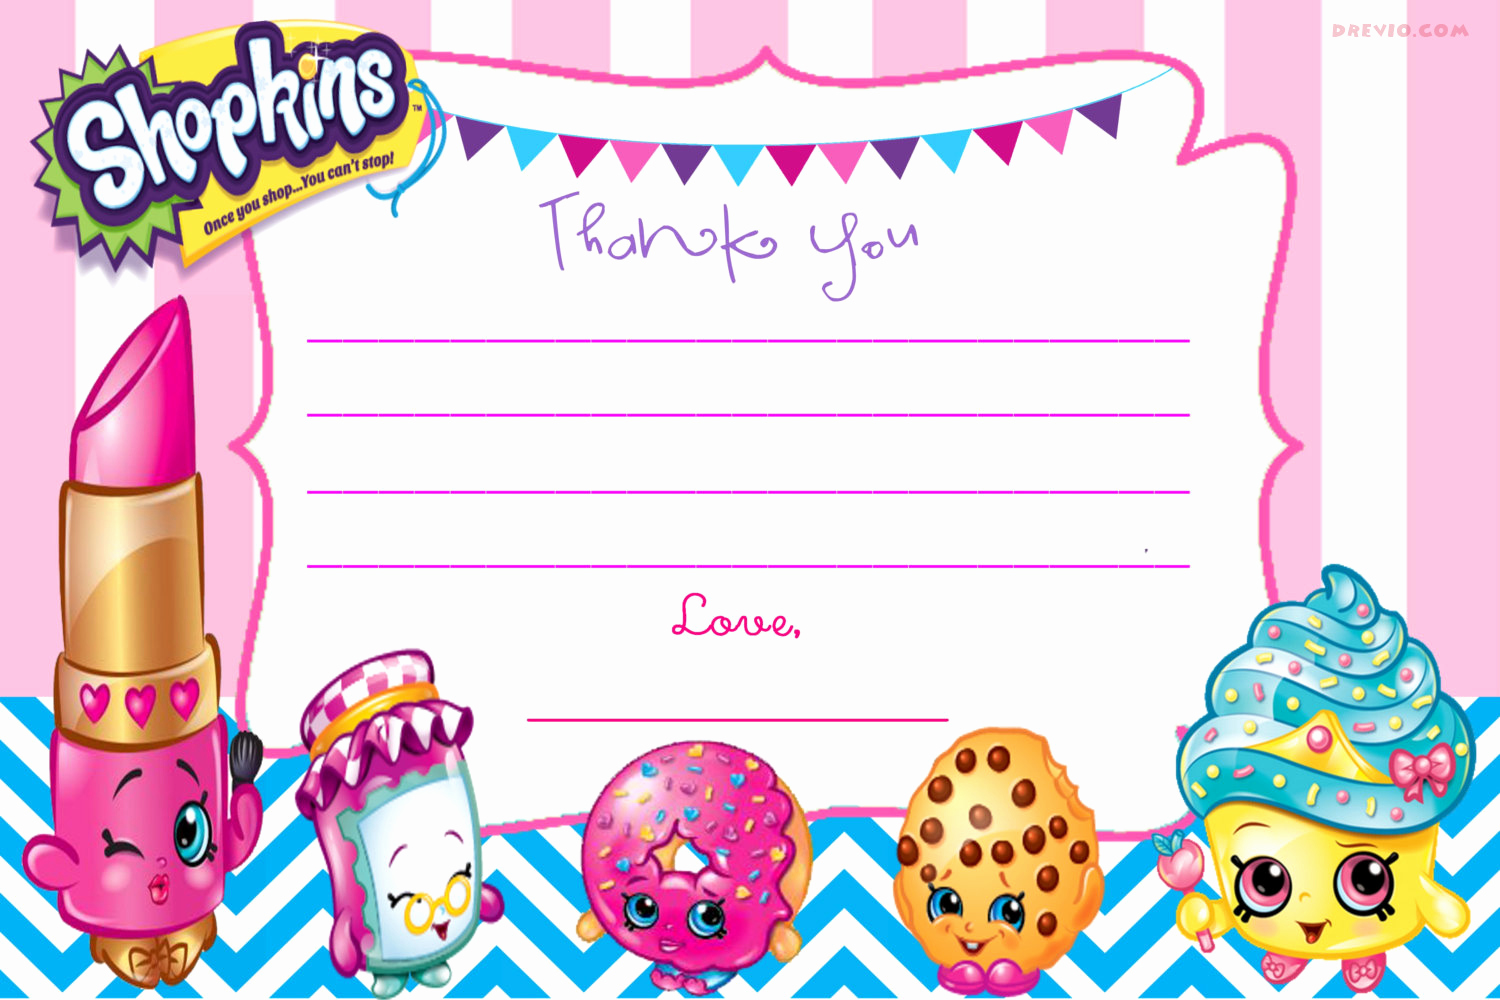 Shopkins Birthday Invitation Template Free Luxury Updated – Free Printable Shopkins Birthday Invitation